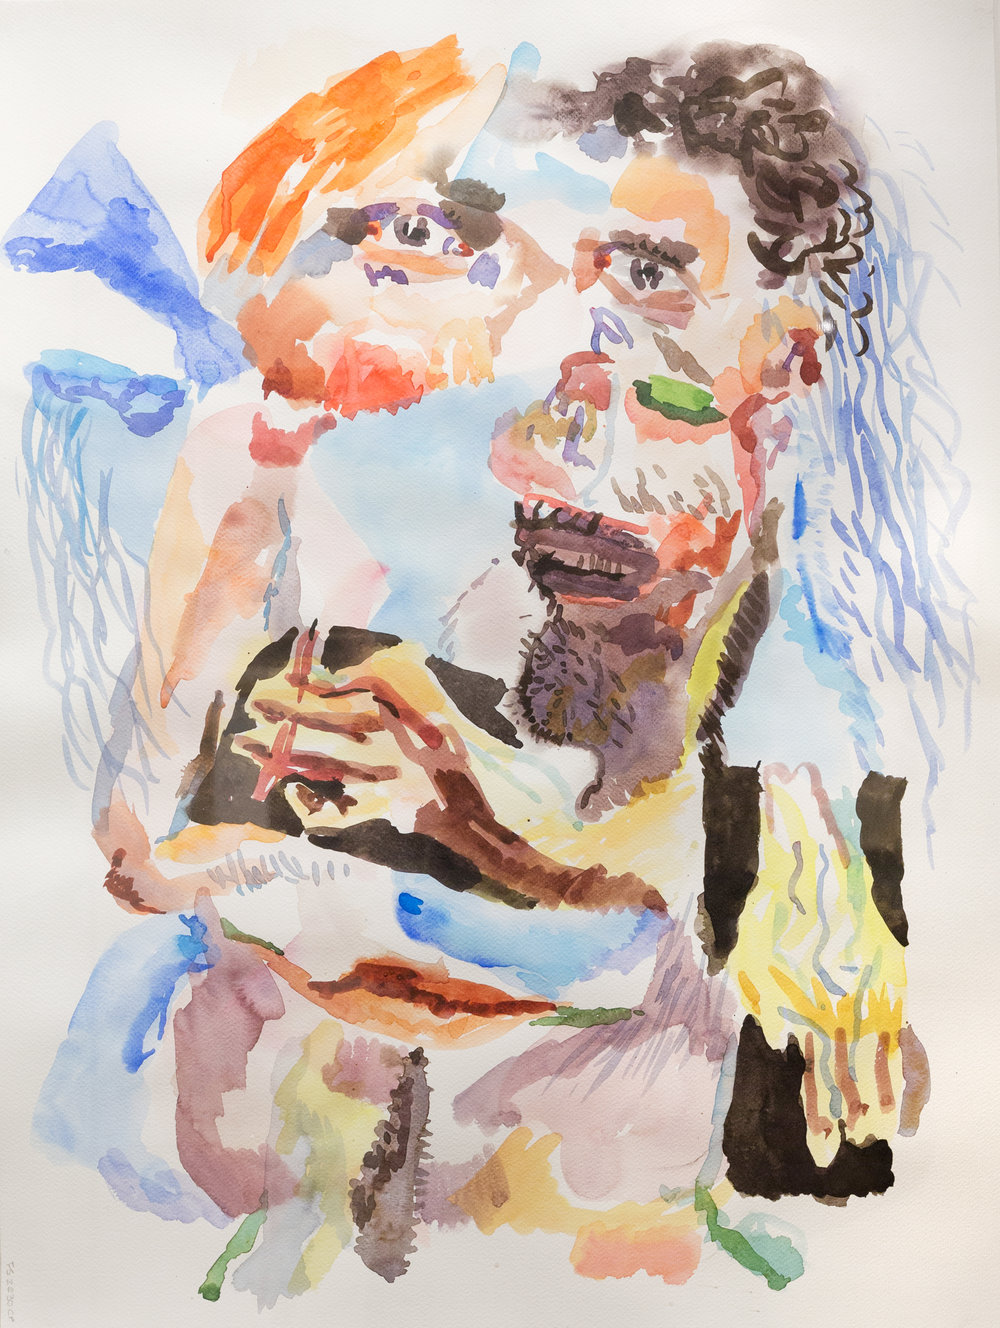 Colin Muir Dorward,  T   alking About What To Do Tonight   ,  2013, watercolour on paper, 76 x 55 cm, 2017